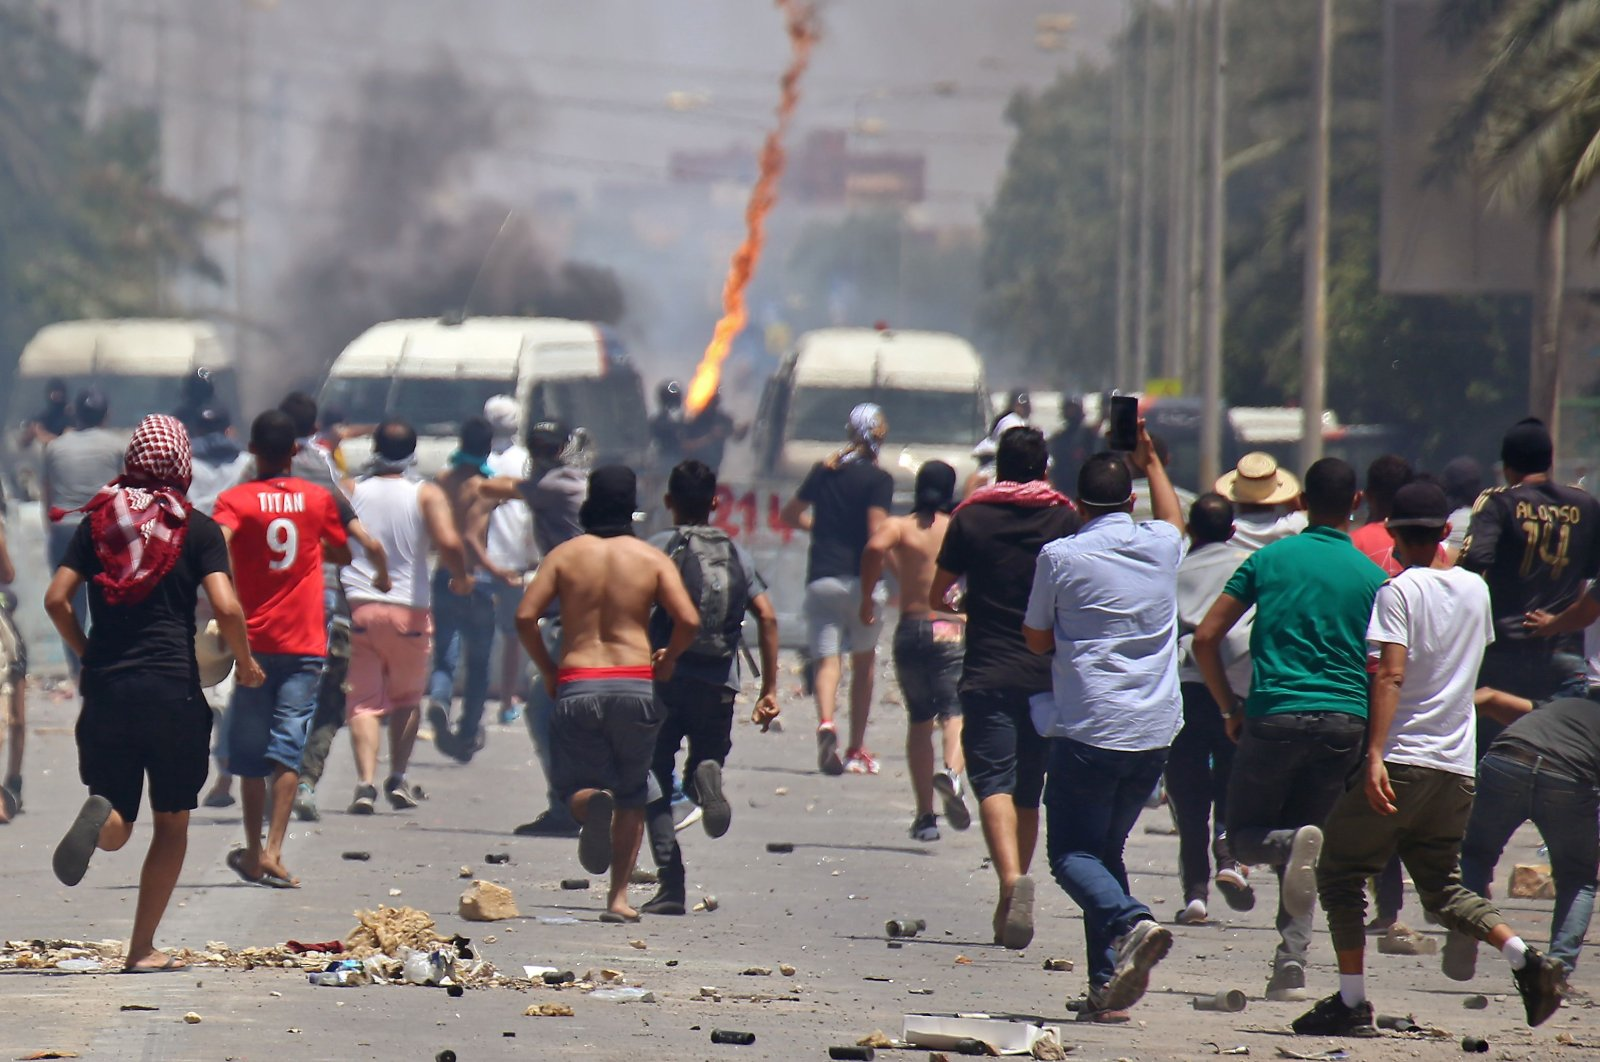 Tunisian protesters clash with security forces as they demand authorities make good on a 2017 promise to provide jobs in the gas and oil sector to thousands of unemployed, in the southern city of Tataouine, Tunisia, June 22, 2020. (AFP Photo)